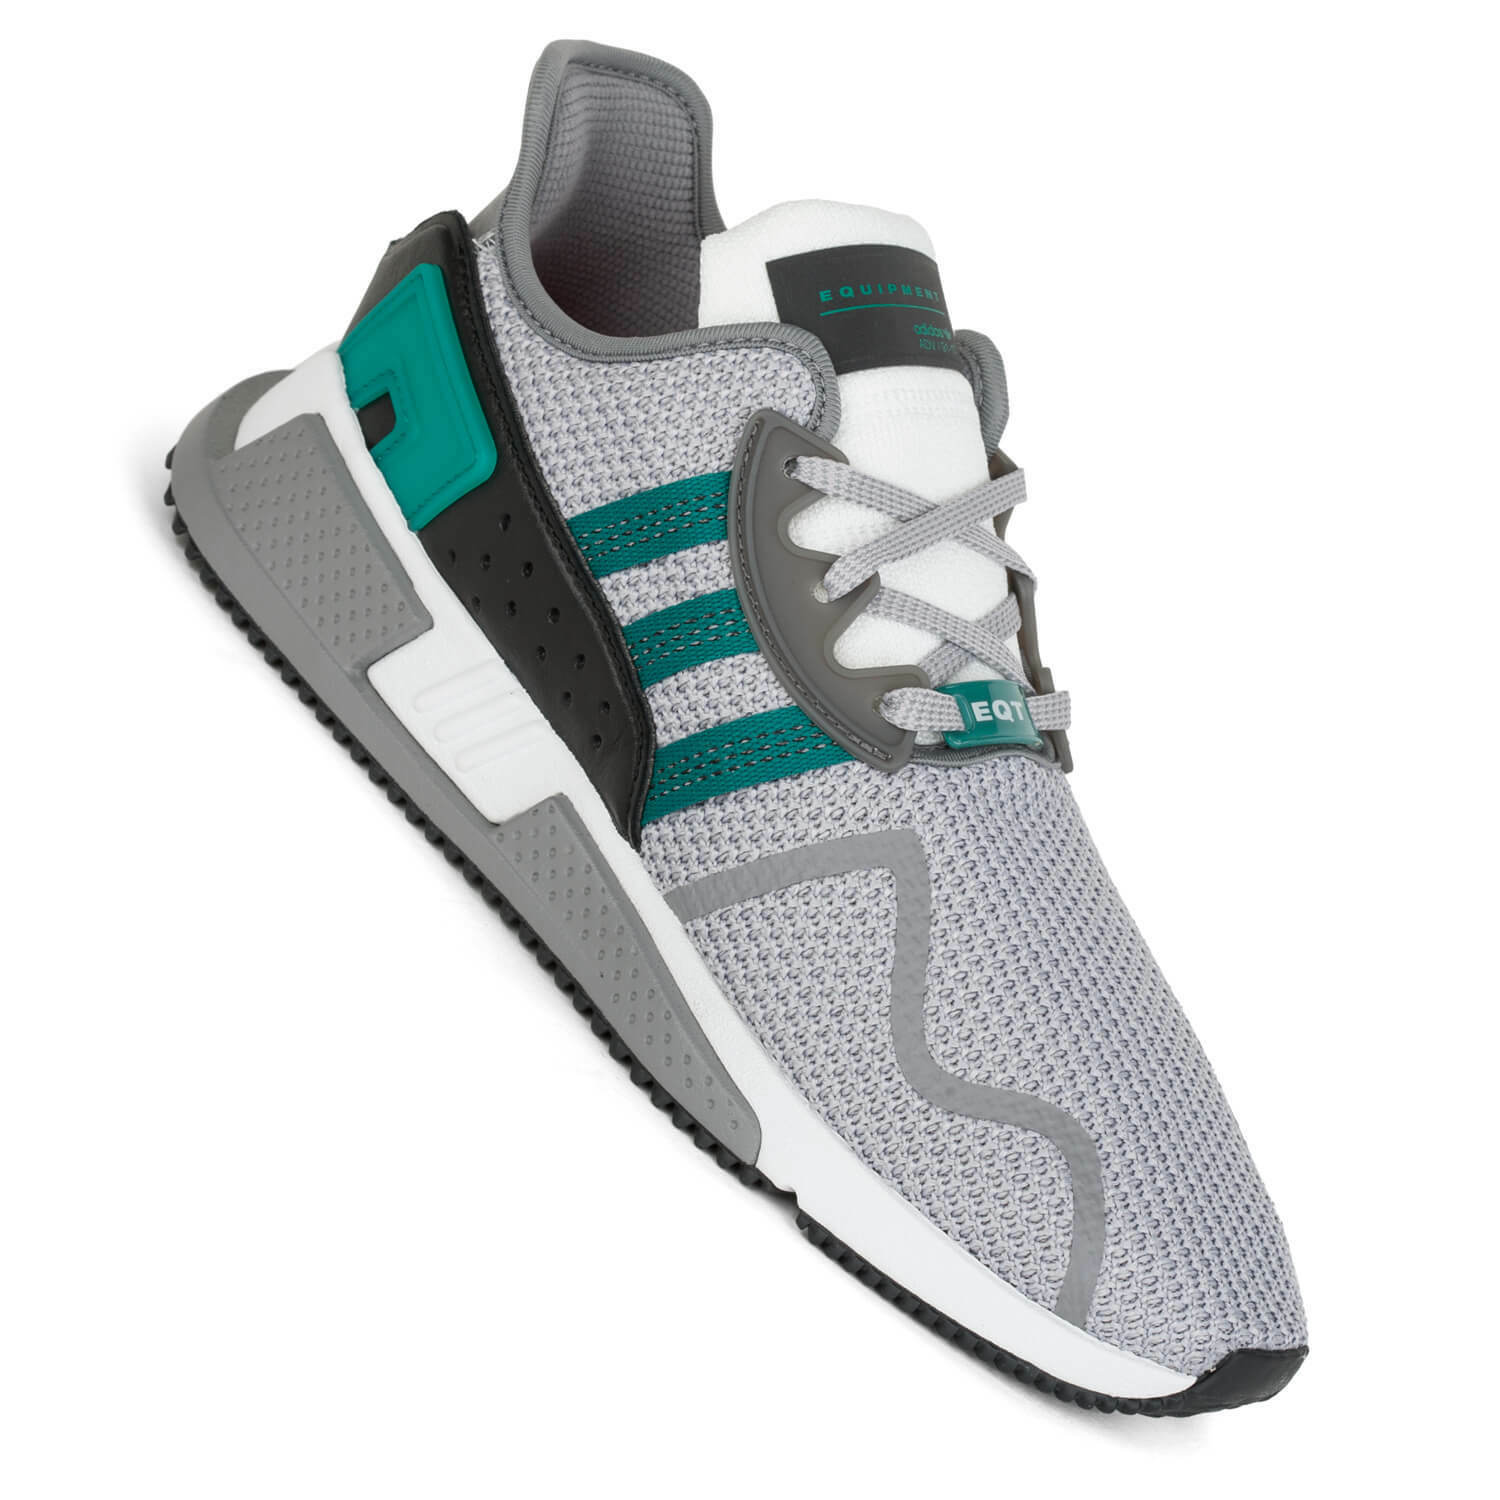 innovative design 19628 bd8c1 Adidas EQT Equipment Cushion ADV grau two two two Grün Herren Turnschuhe  AH2232 d33889